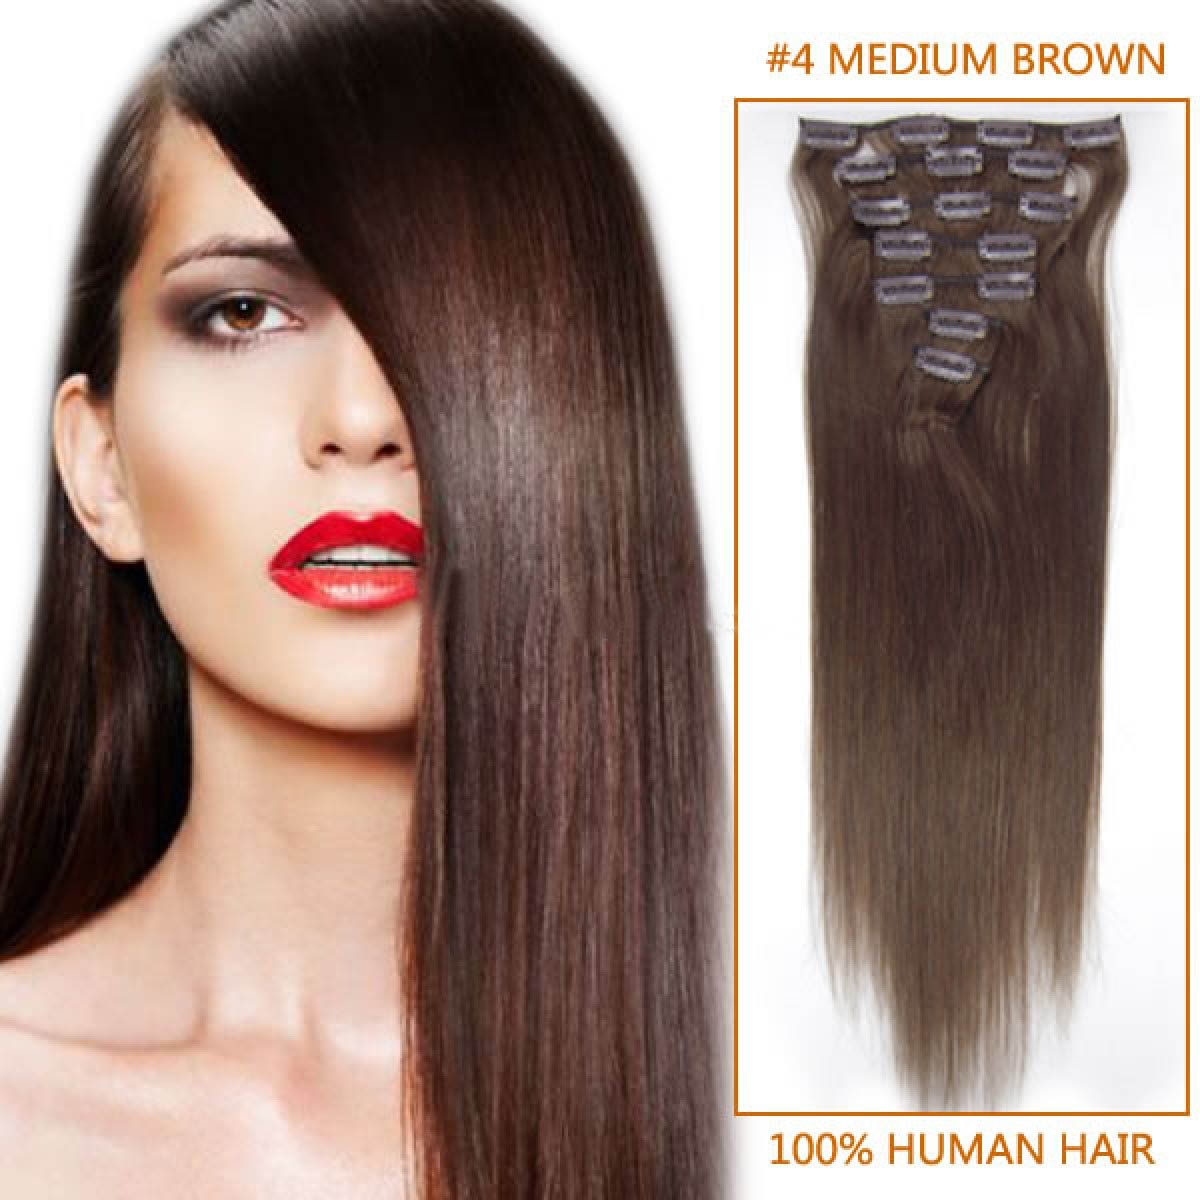 28 Inch 4 Medium Brown Clip In Remy Human Hair Extensions 7pcs